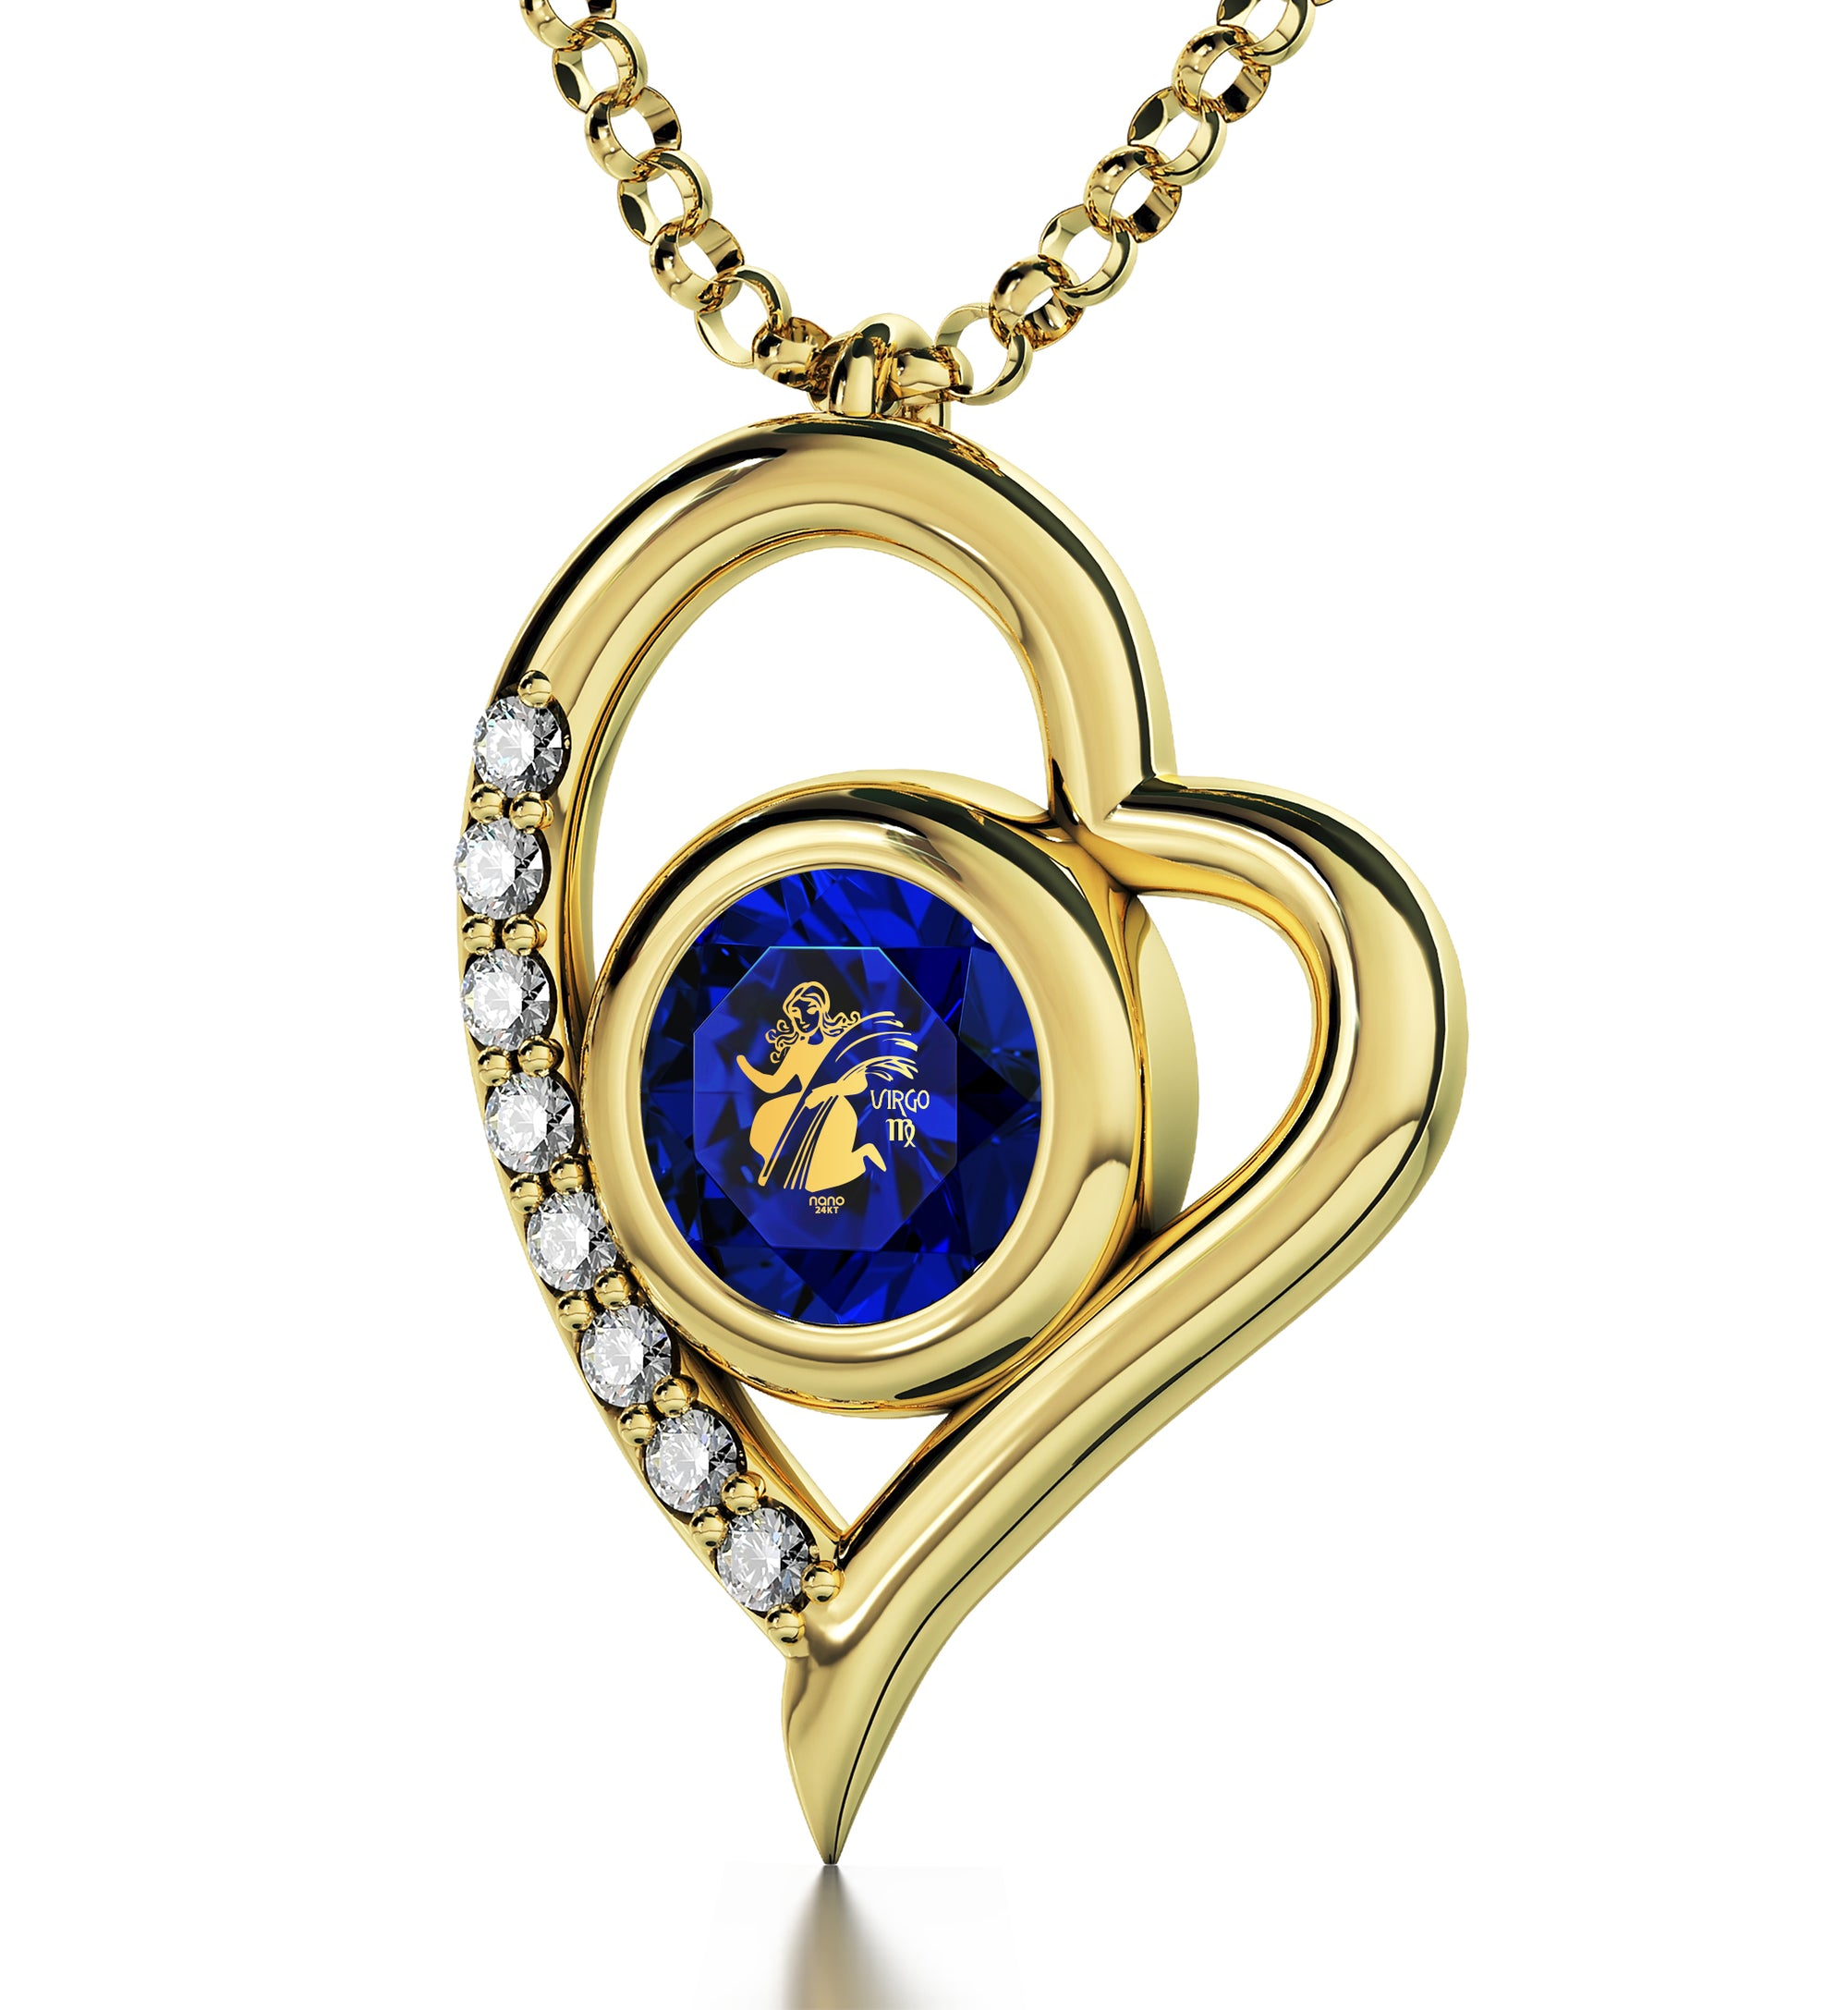 Gold Plated Virgo Necklace Zodiac Heart Pendant 24k Gold inscribed on Crystal - NanoStyle Jewelry